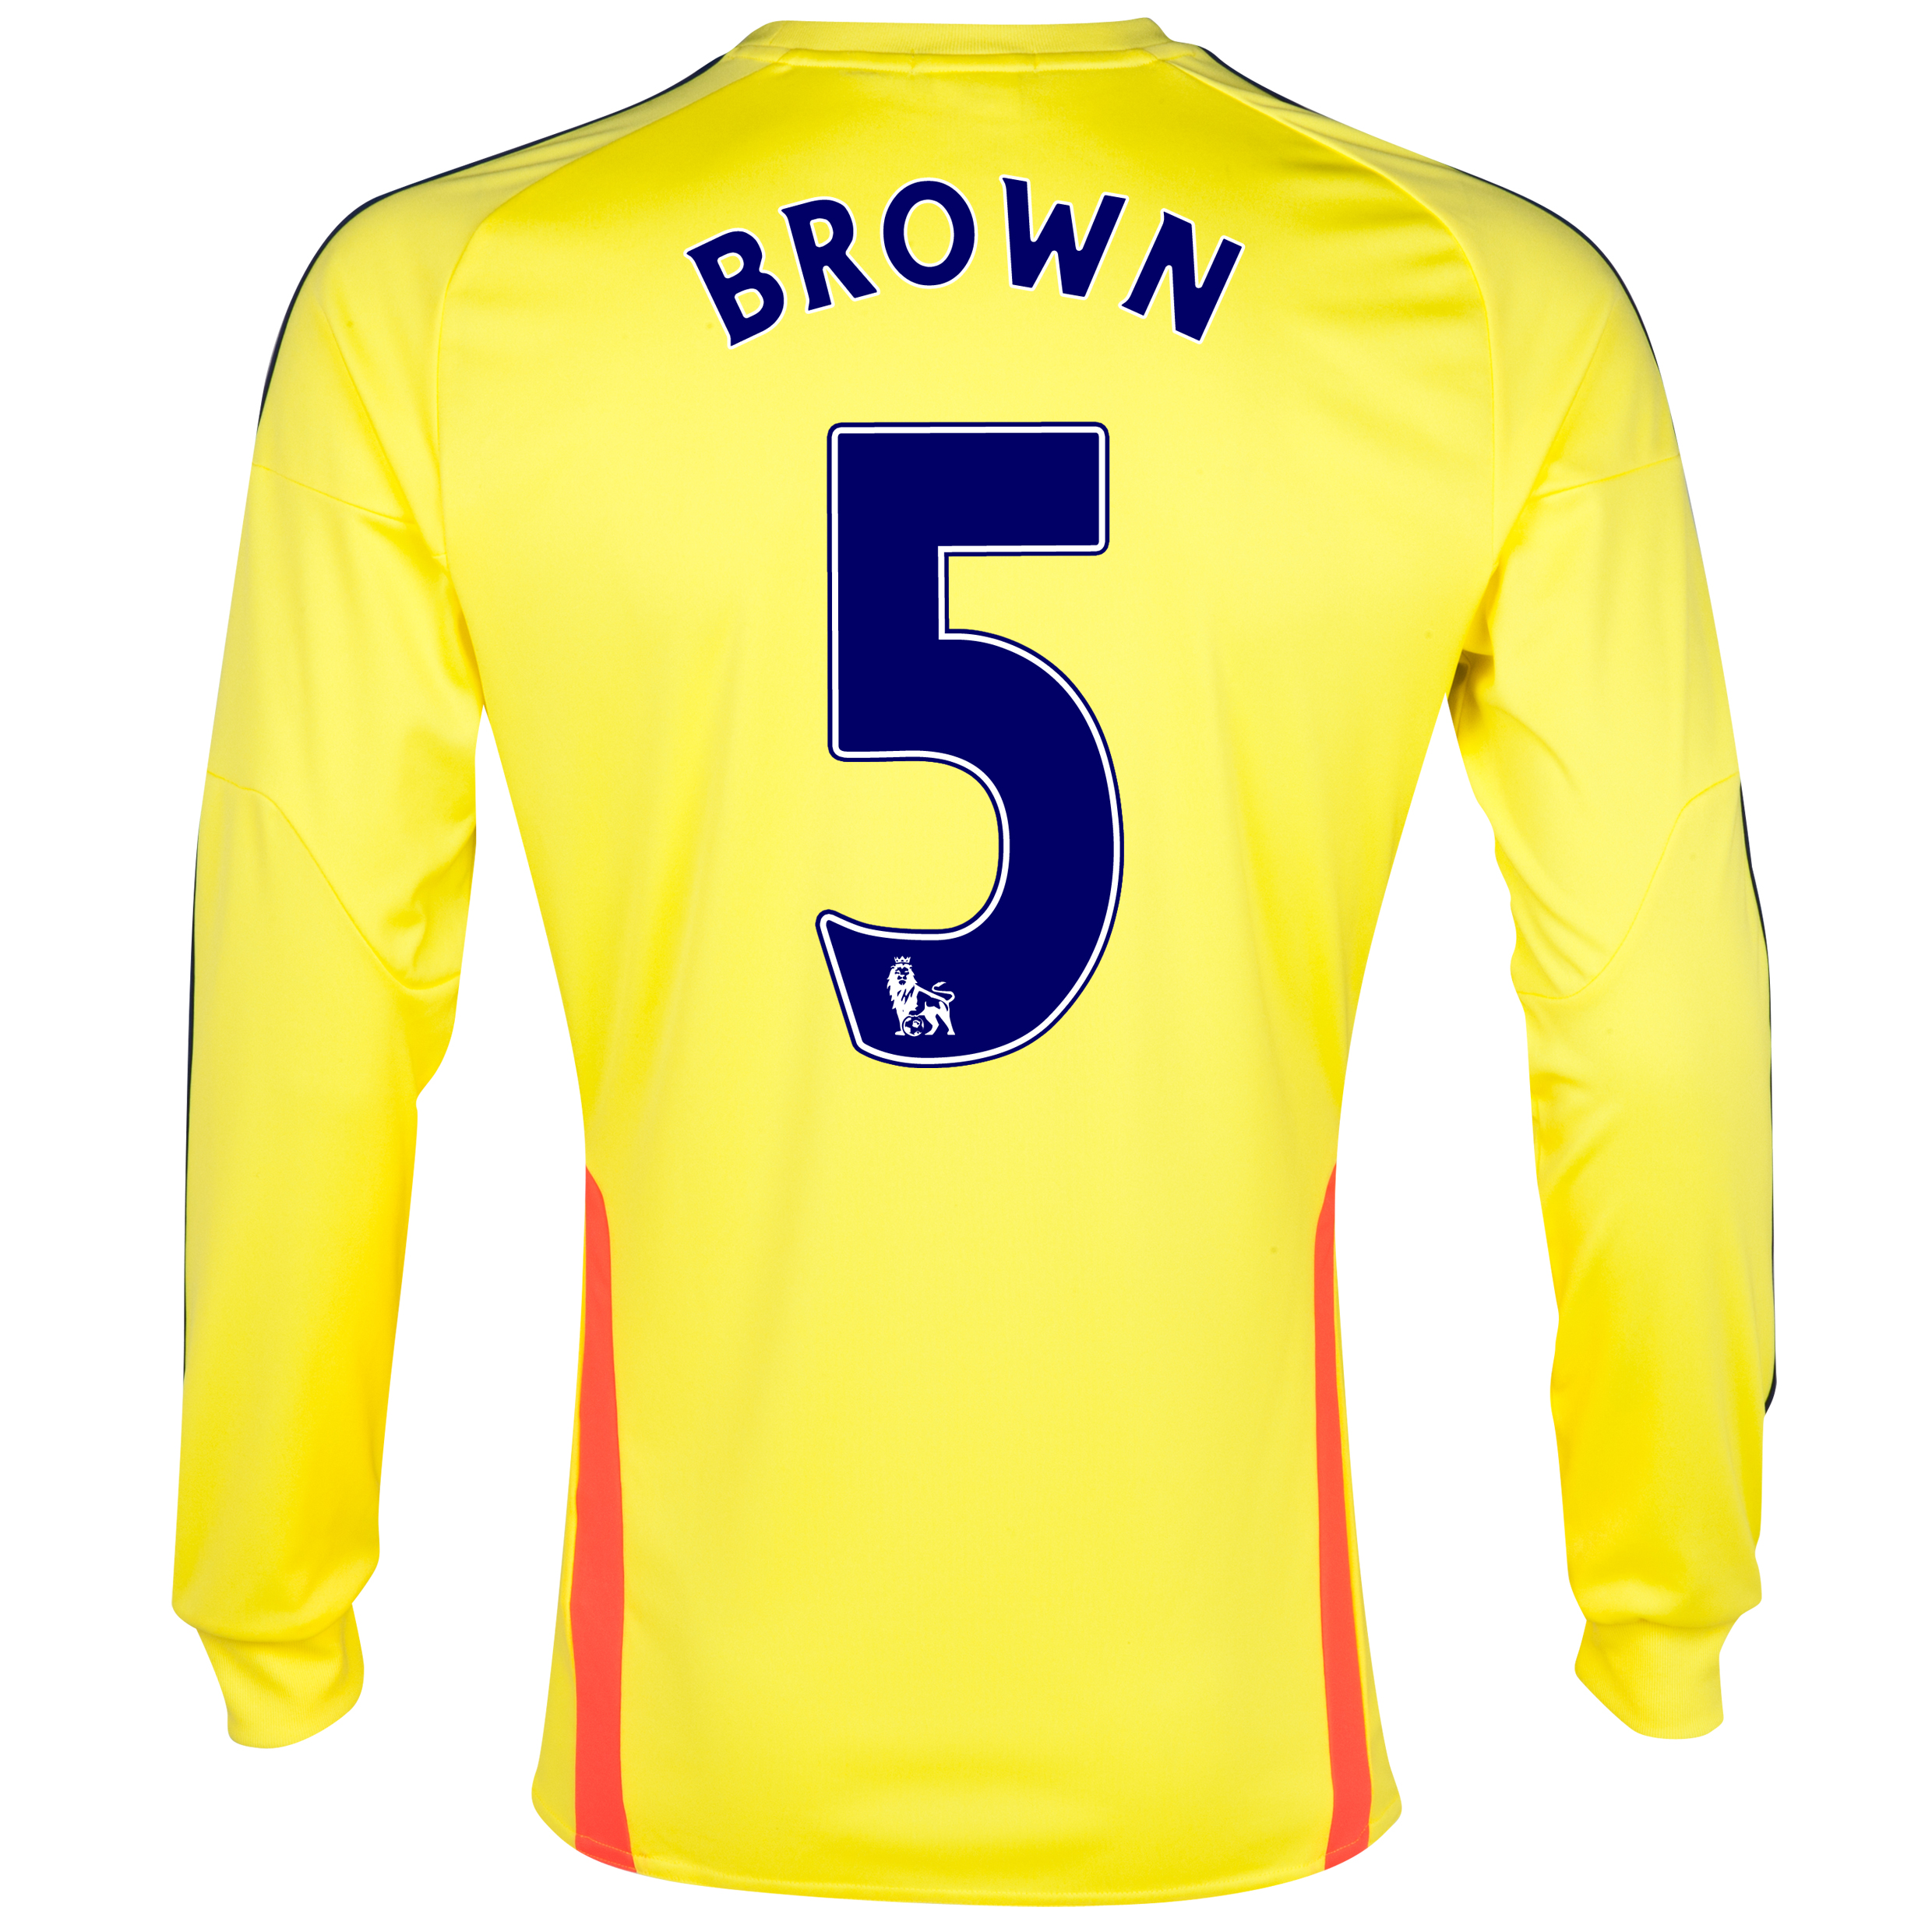 Sunderland Away Shirt 2013/14 - Long Sleeved with Brown 5 printing